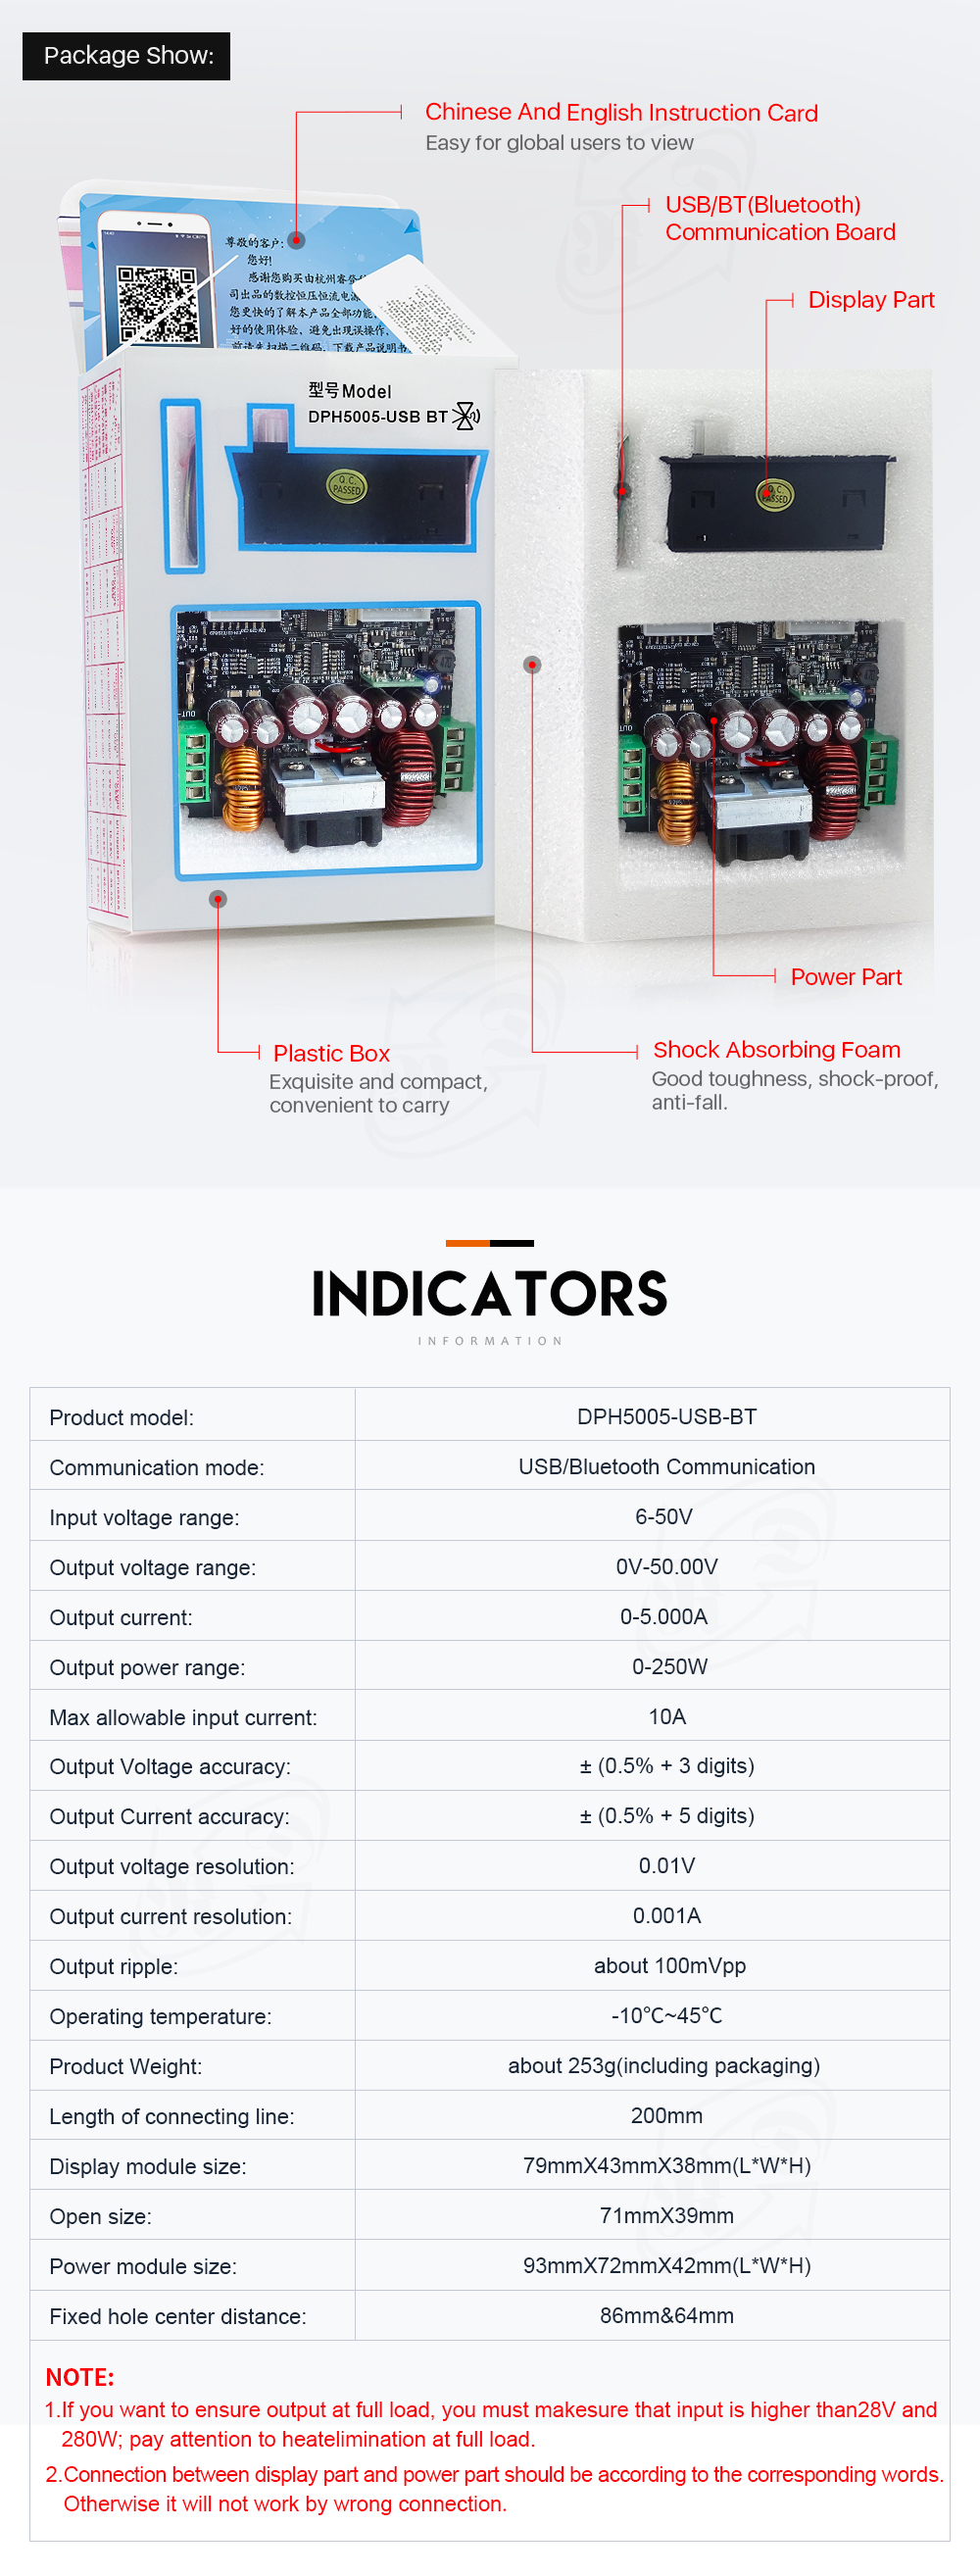 RIDEN® DPH5005 Buck-boost Converter Constant Voltage Current Programmable Digital Control Adjustable Power Supply Color LCD Voltmeter 50V 5A Module